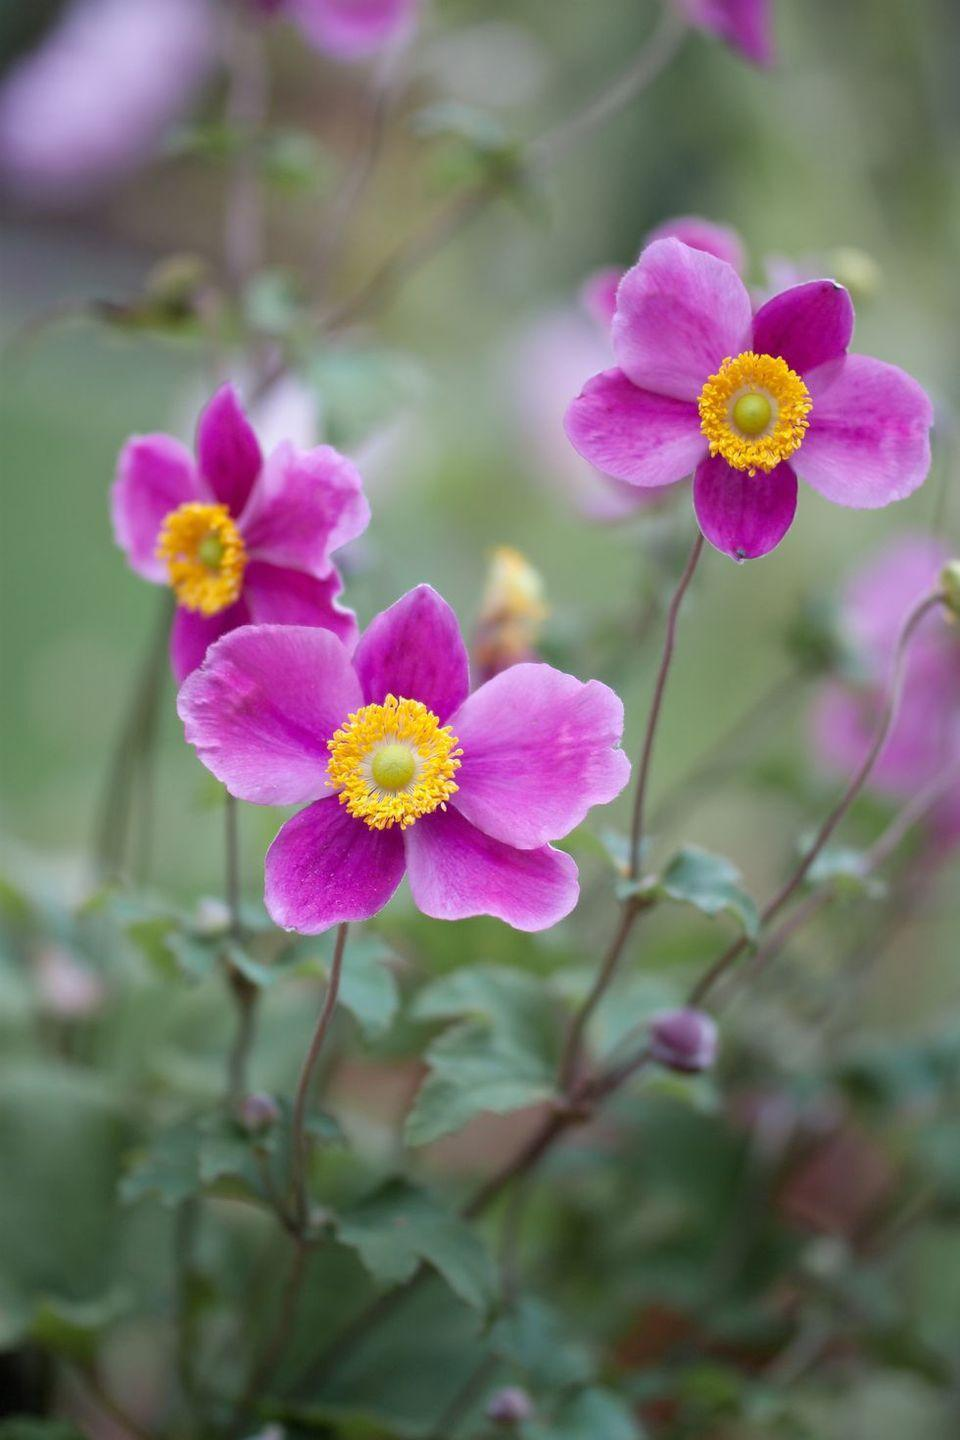 <p>These blooms take their name from the Greek word for wind (<em>anemos</em>) since their lives are so short. In modern times, they symbolize fragility. Because they're so short-lived, these pretty little flowers are best appreciated in the garden. </p>